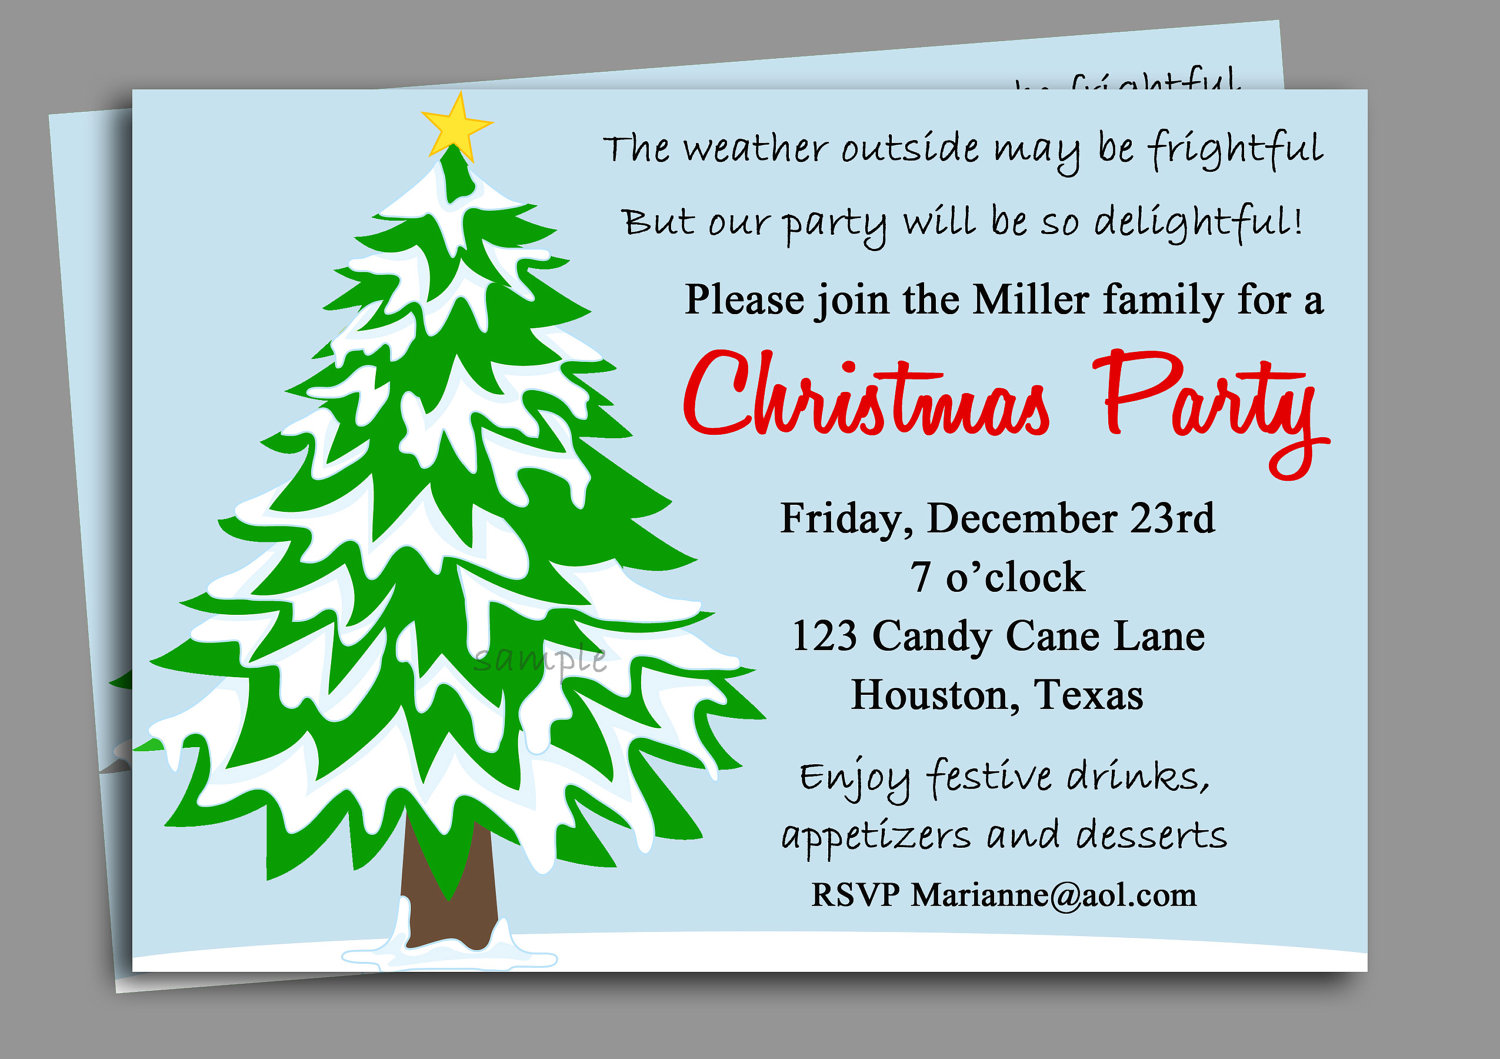 Company Christmas Party Invitation Wording Fabulous Company: Mingle And  Jingle: Company Christmas Invitation Wording ...  Company Party Invitation Templates